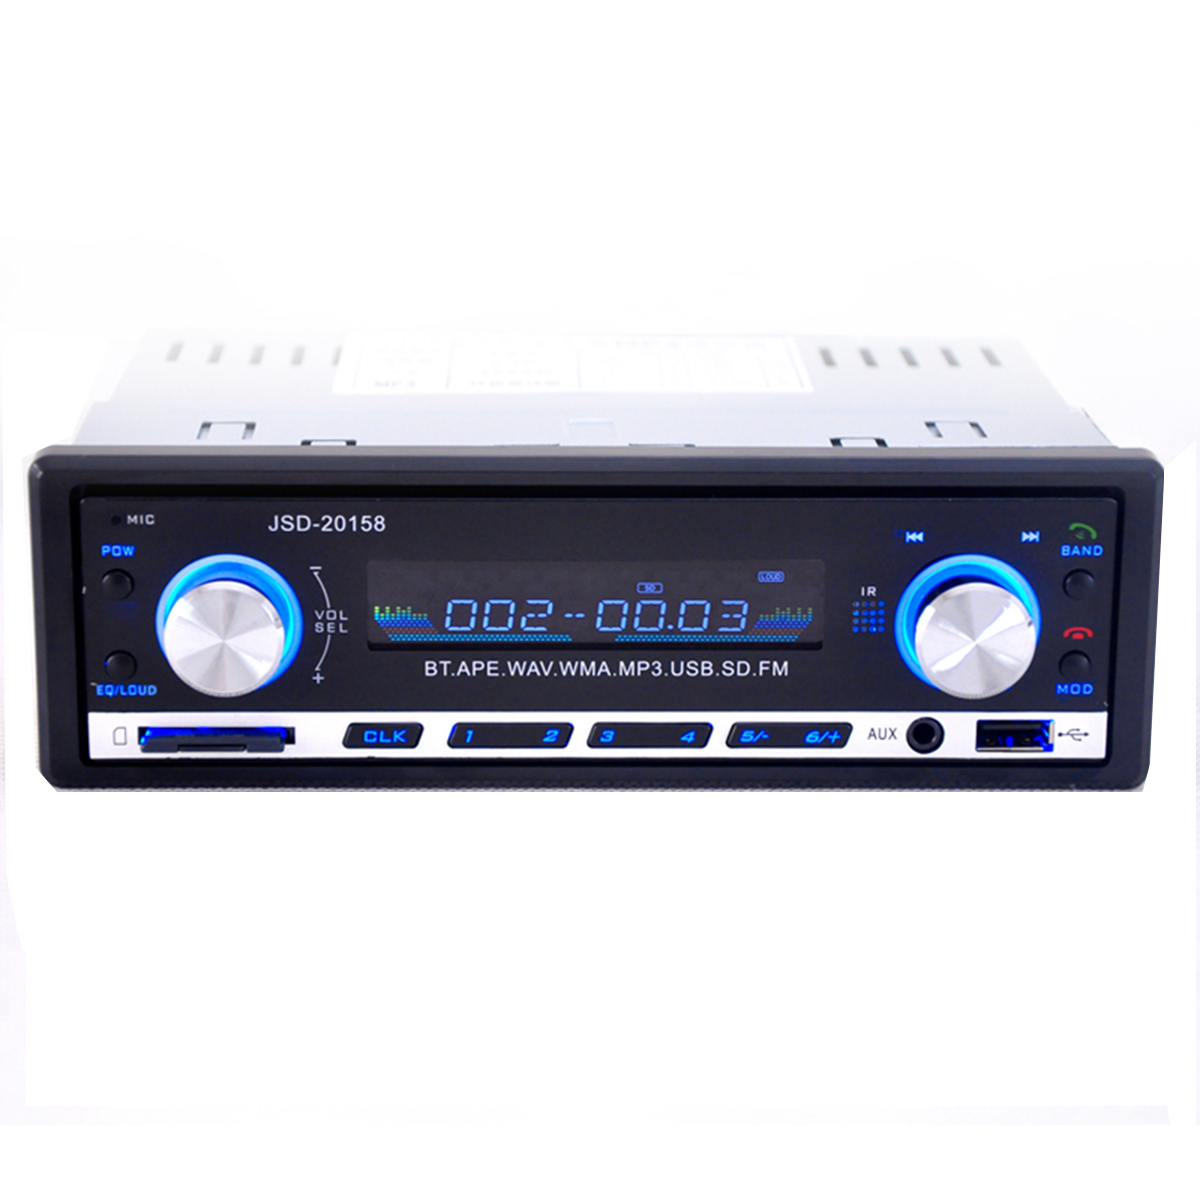 bluetooth car stereo mp3 player usb sd aux audio player 1 din in dash radio lazada malaysia. Black Bedroom Furniture Sets. Home Design Ideas